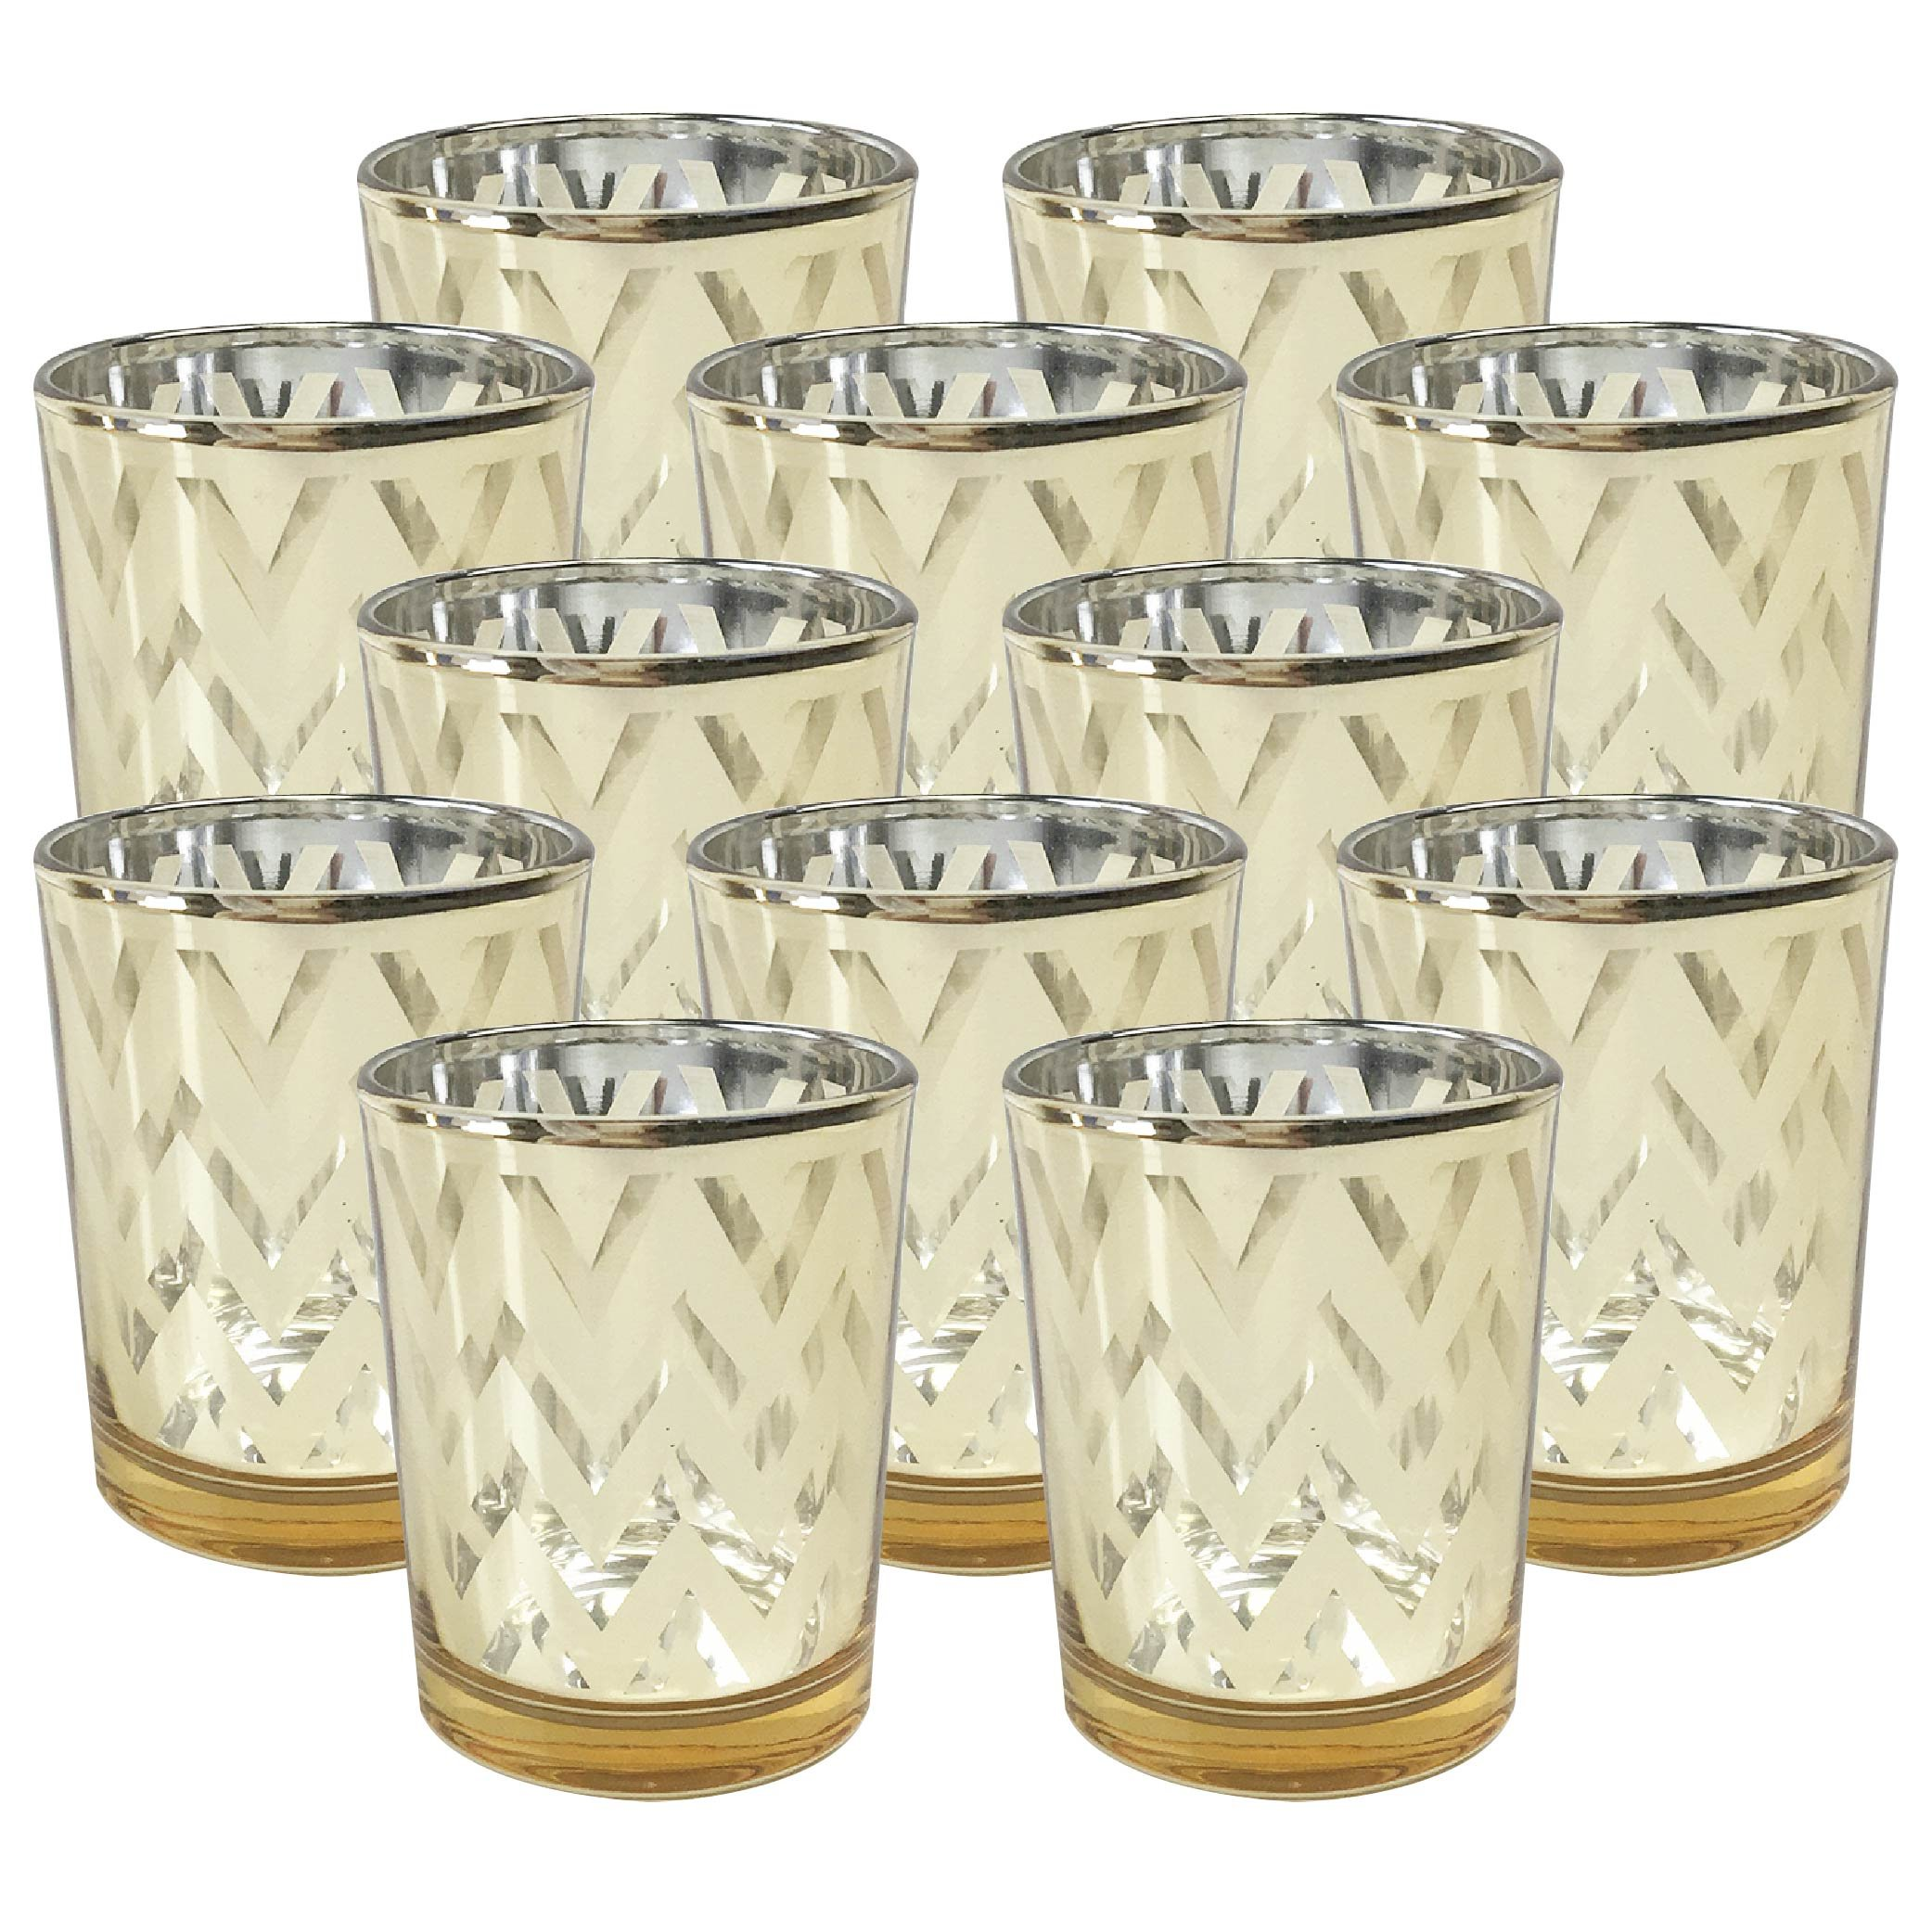 Just Artifacts Glass Votive Candle Holders 2.75''H Chevron Gold (Set of 12) - Glass Votive Candle Holders for Weddings and Home Décor